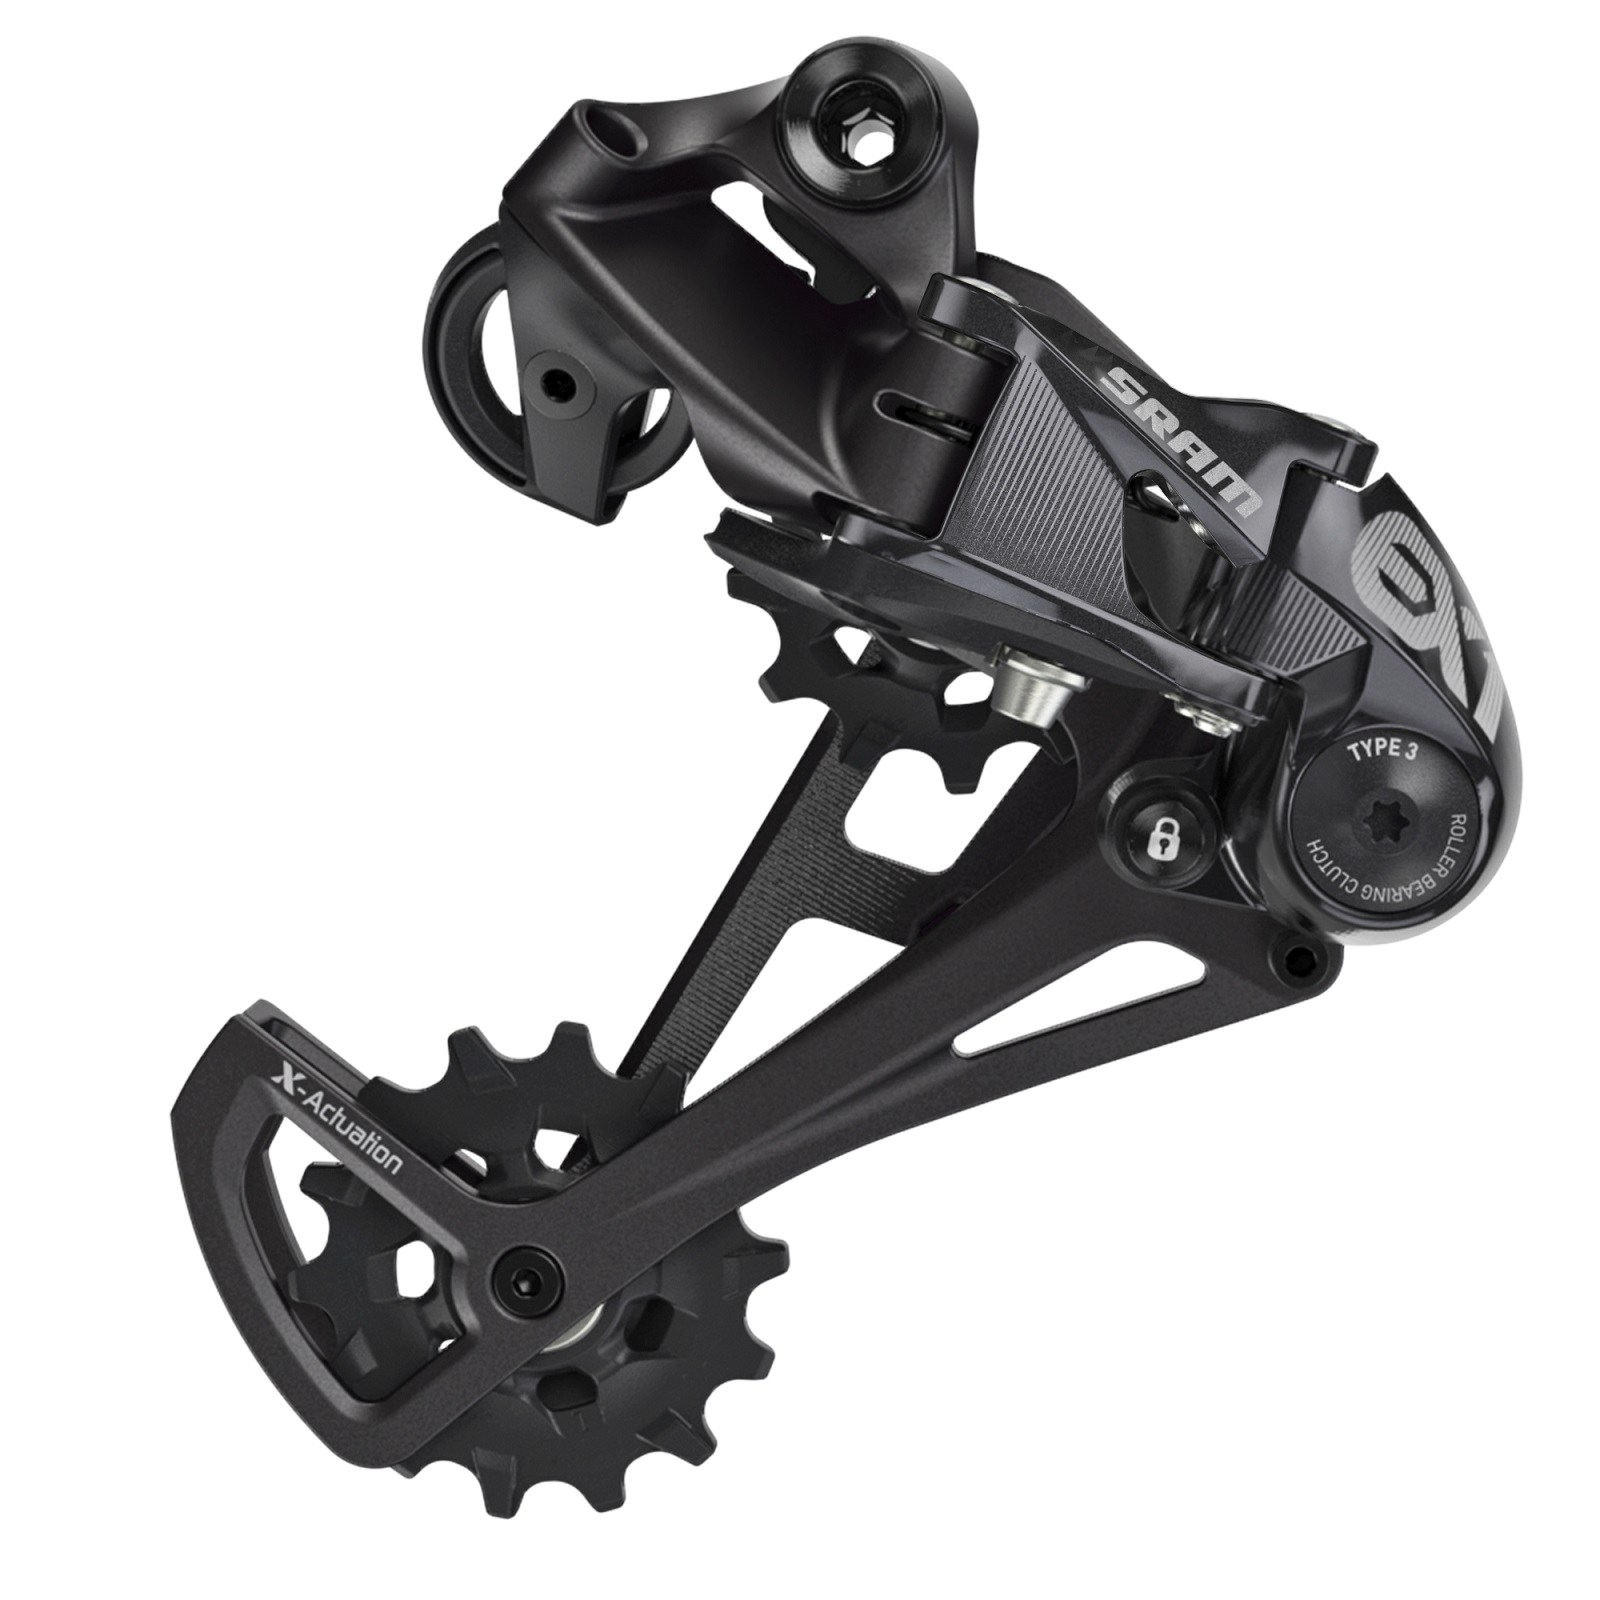 SRAM_MTB_EX1_RD_Side_Black_MH (2)